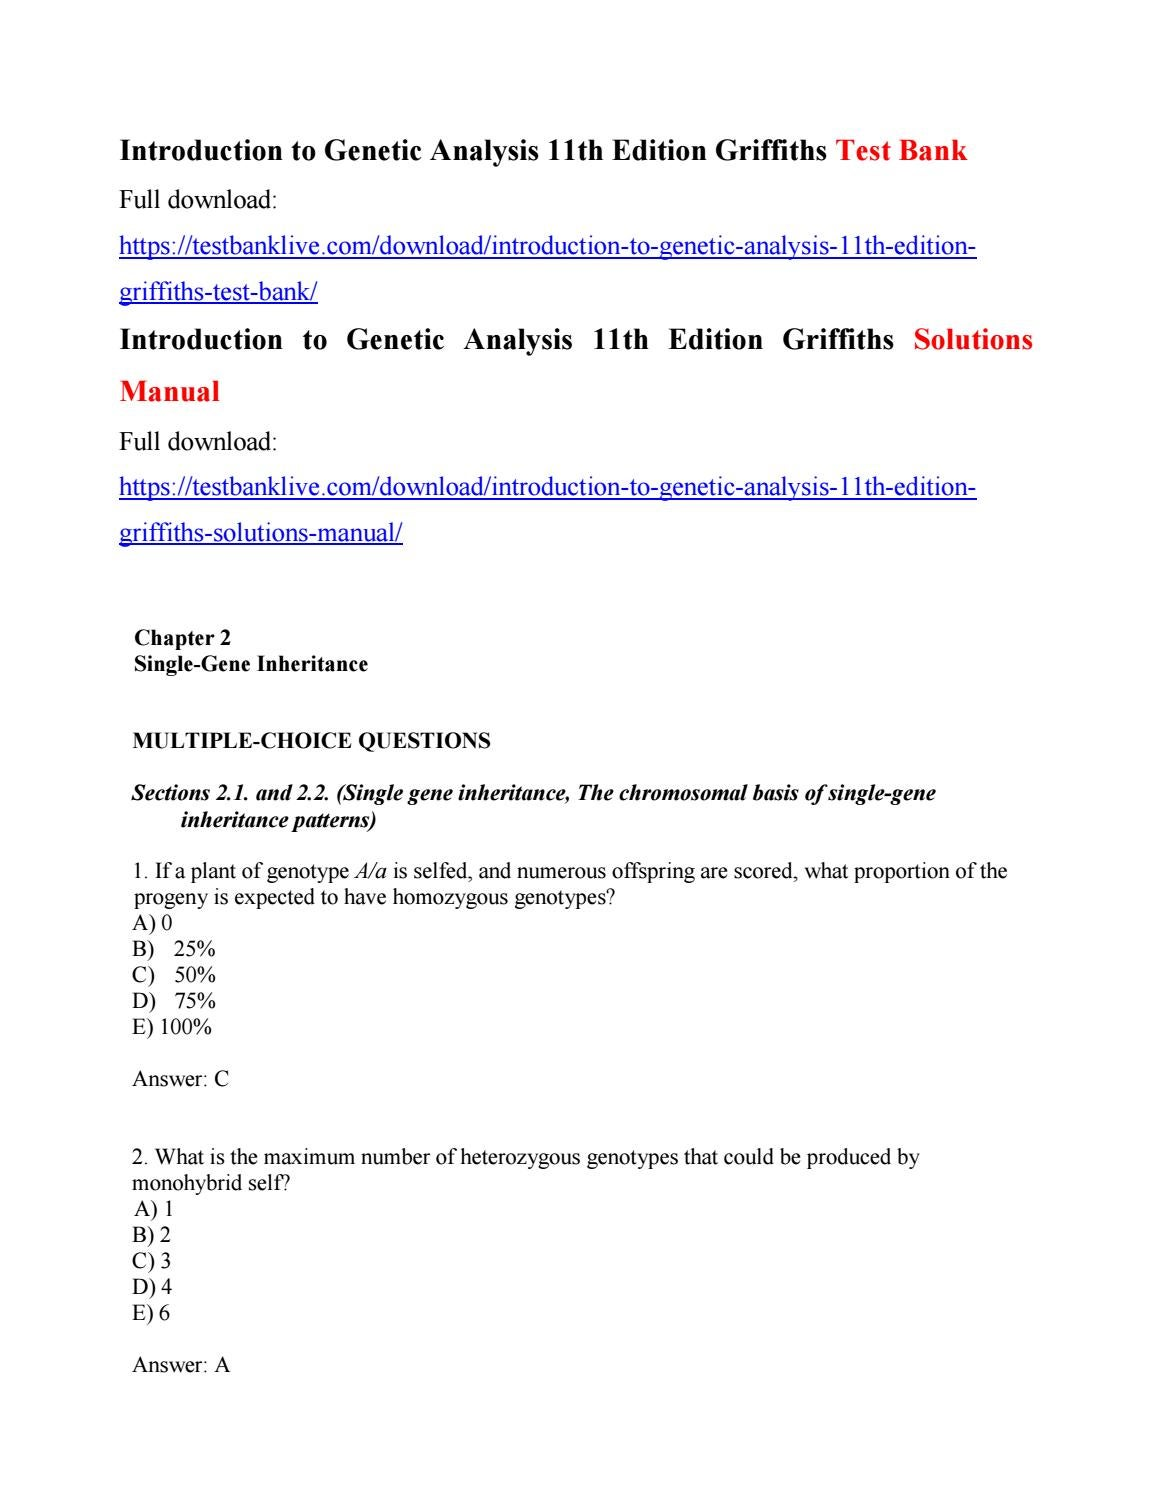 Introduction to genetic analysis 11th edition griffiths test bank by  zgzg111 - issuu